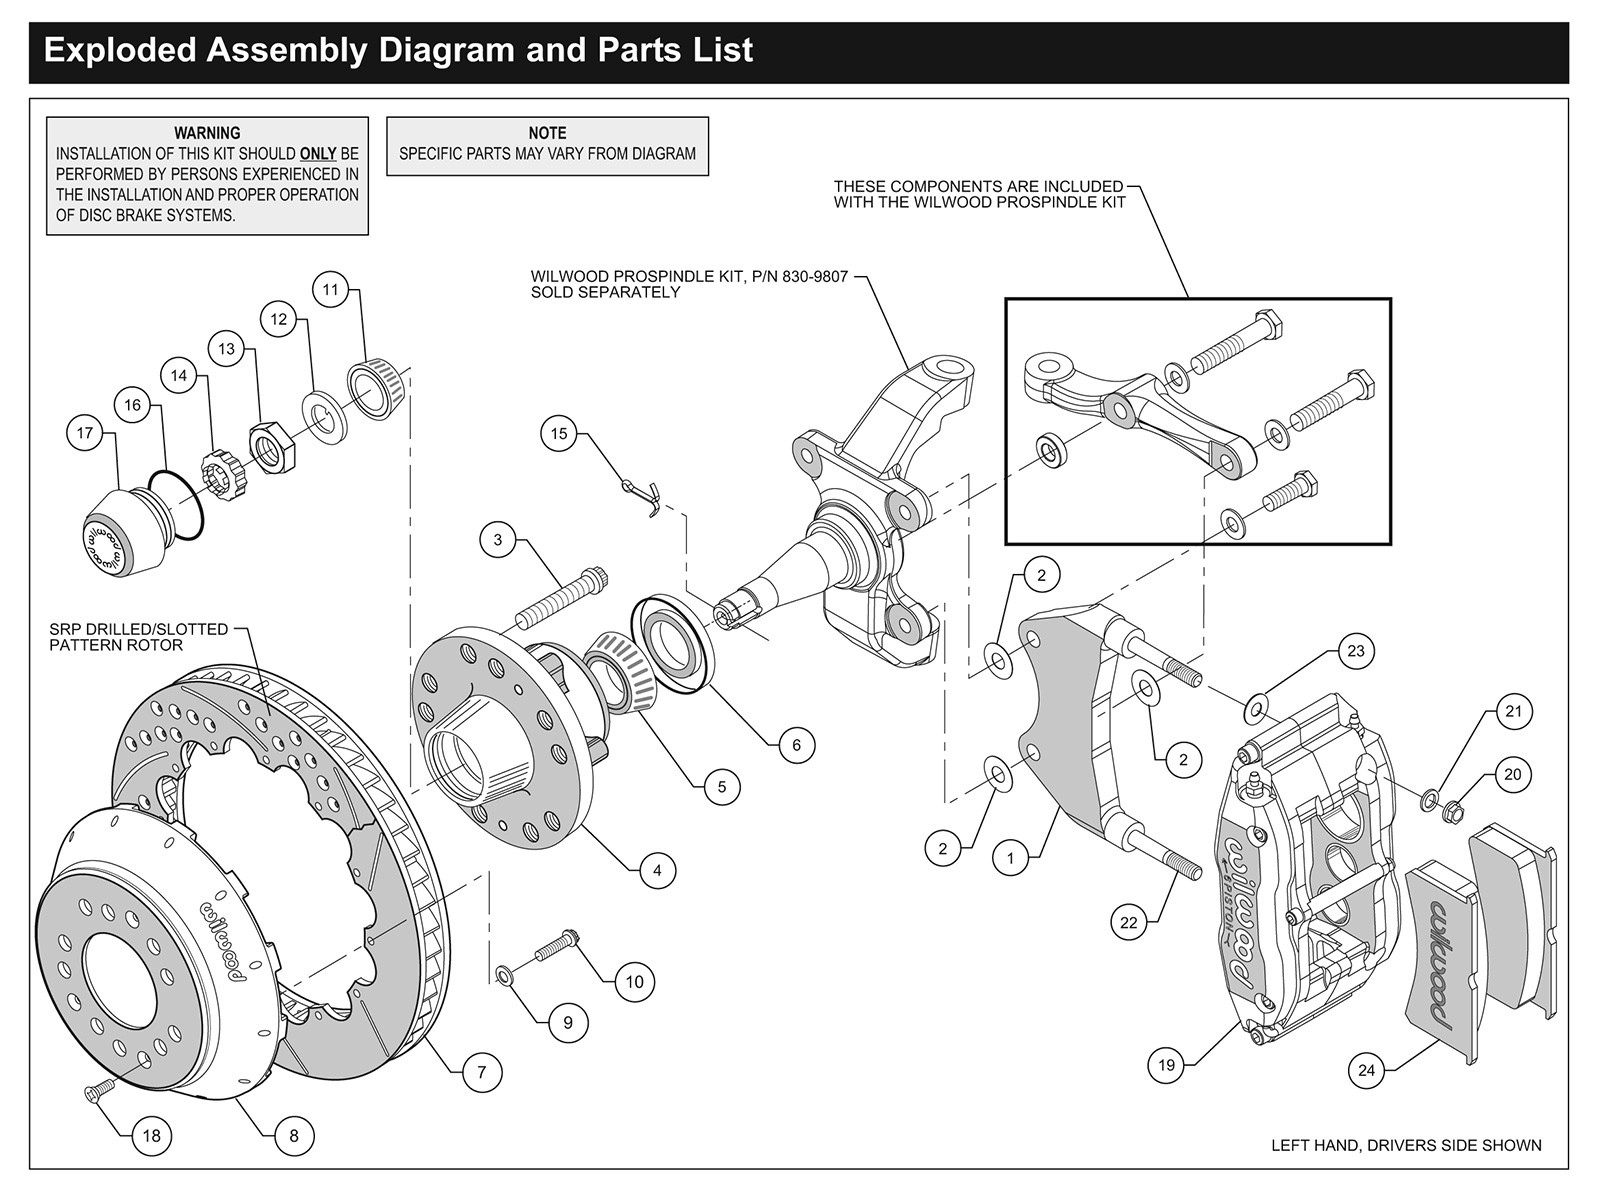 Disc Brake Parts Diagram How to Install Wilwood Disc Brakes Hot Rod Network Of Disc Brake Parts Diagram